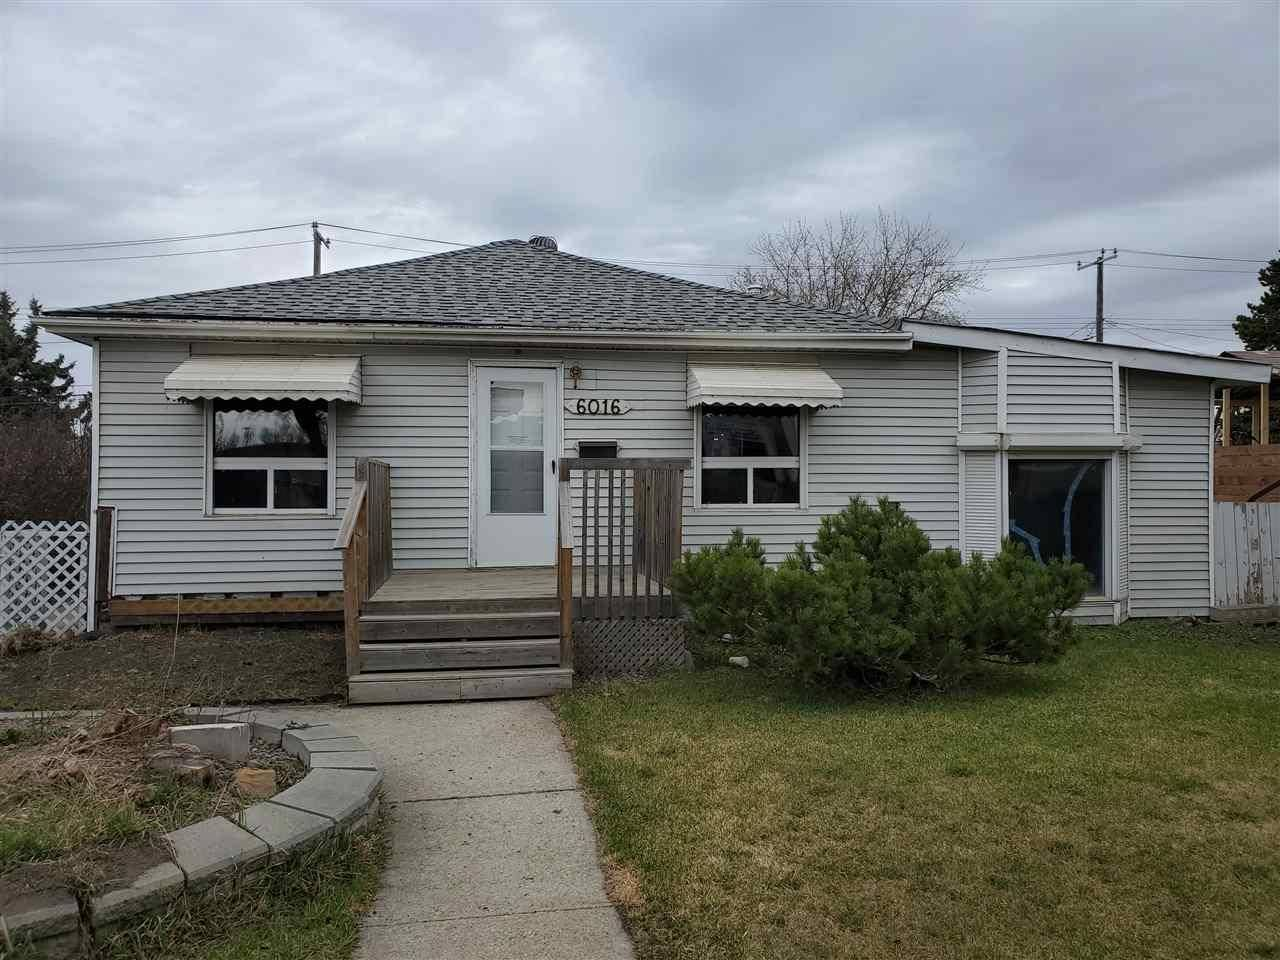 House for sale at 6016 101 Ave Nw Edmonton Alberta - MLS: E4189668